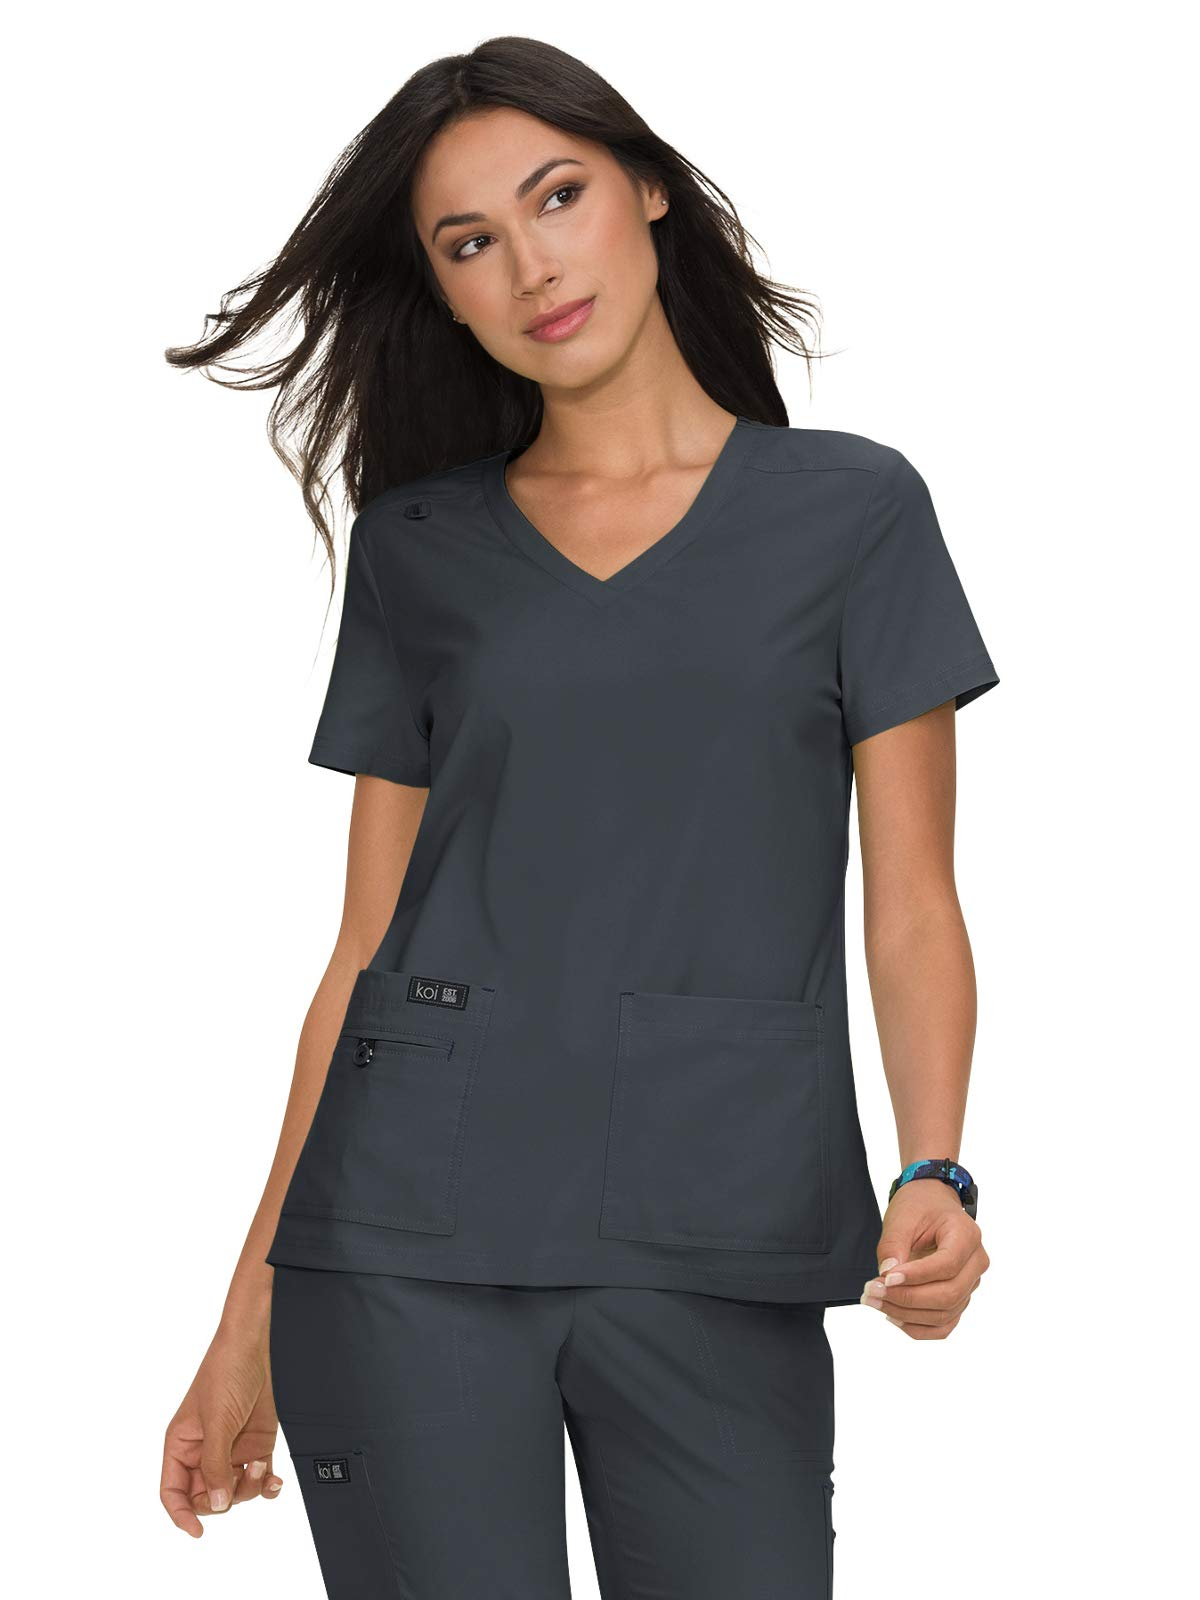 KOI Basics 373 Women's Becca Scrub Top Charcoal L